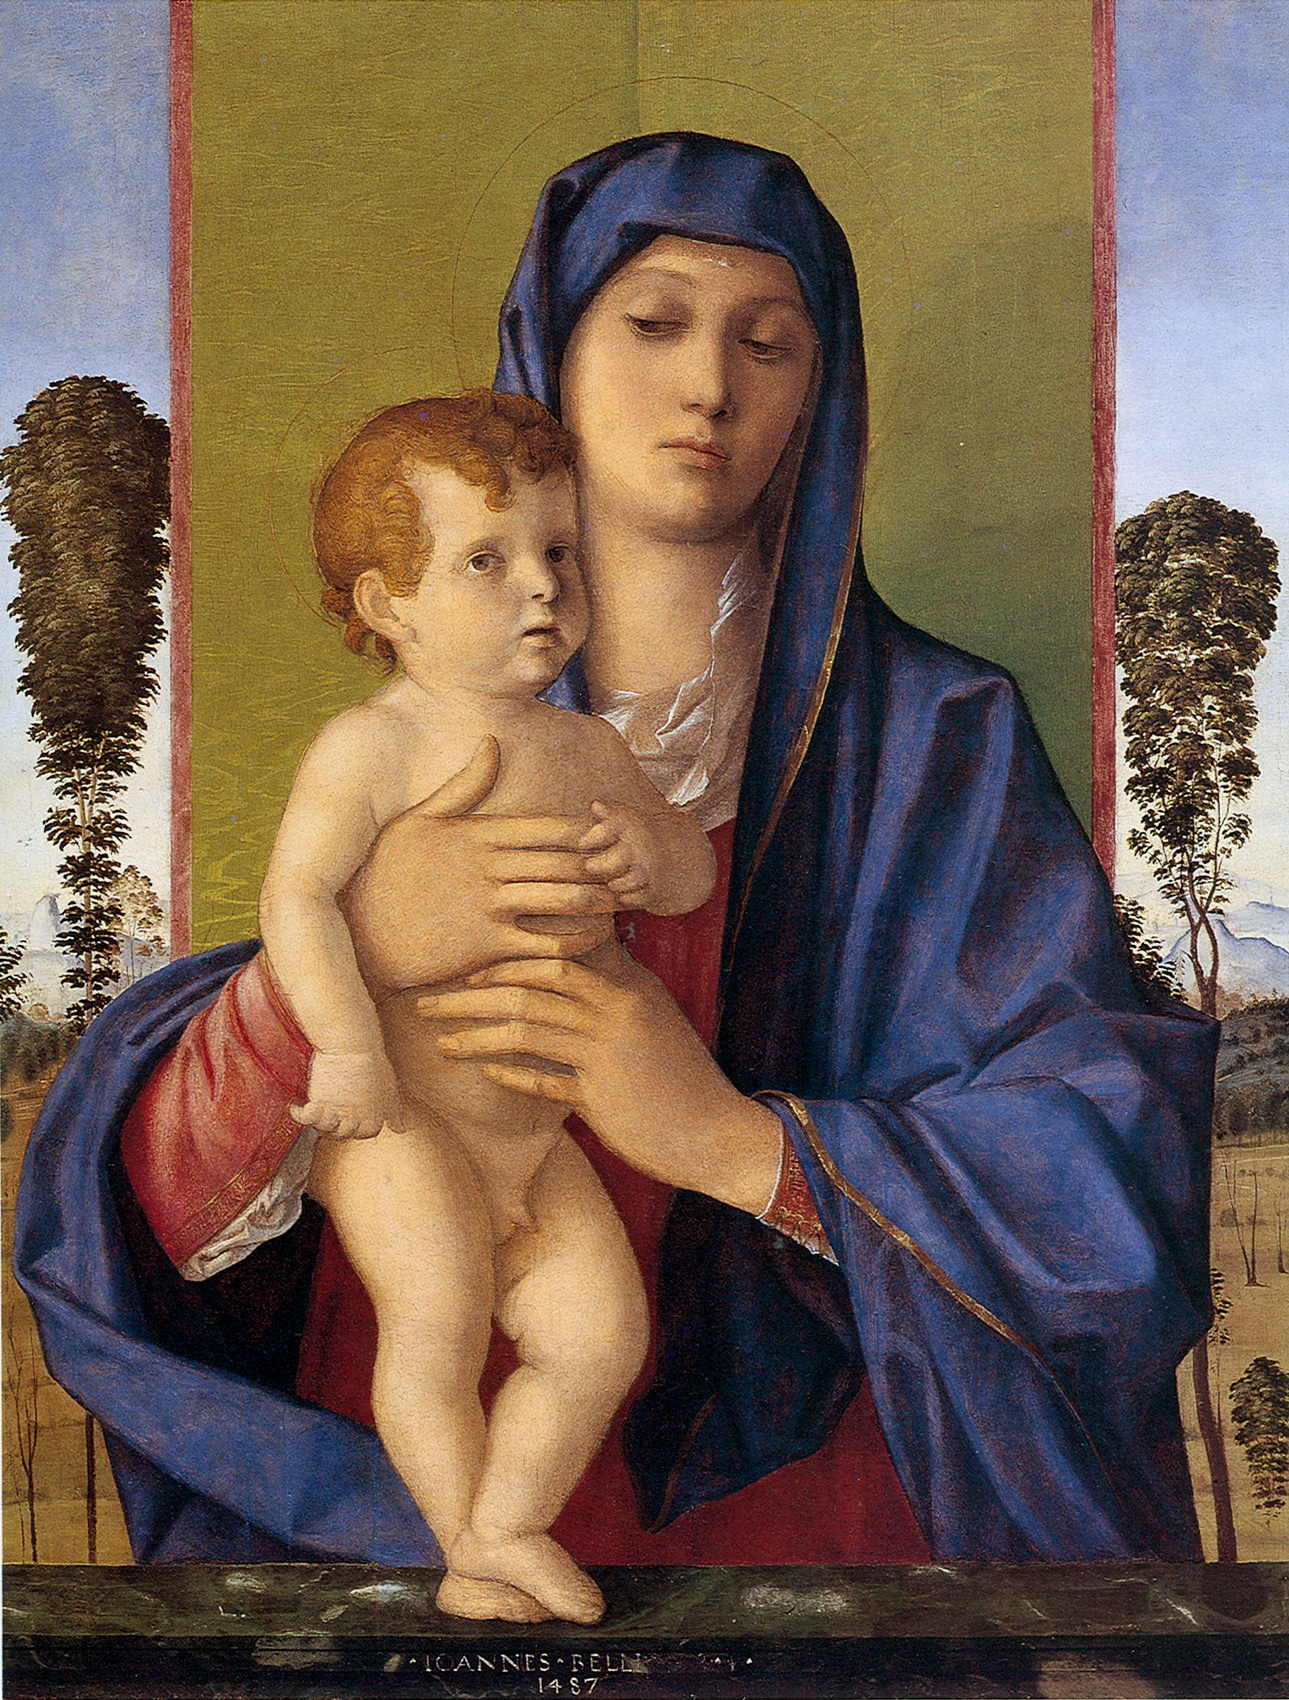 https://upload.wikimedia.org/wikipedia/commons/4/4d/Giovanni_bellini%2C_madonna_degli_alberetti.jpg